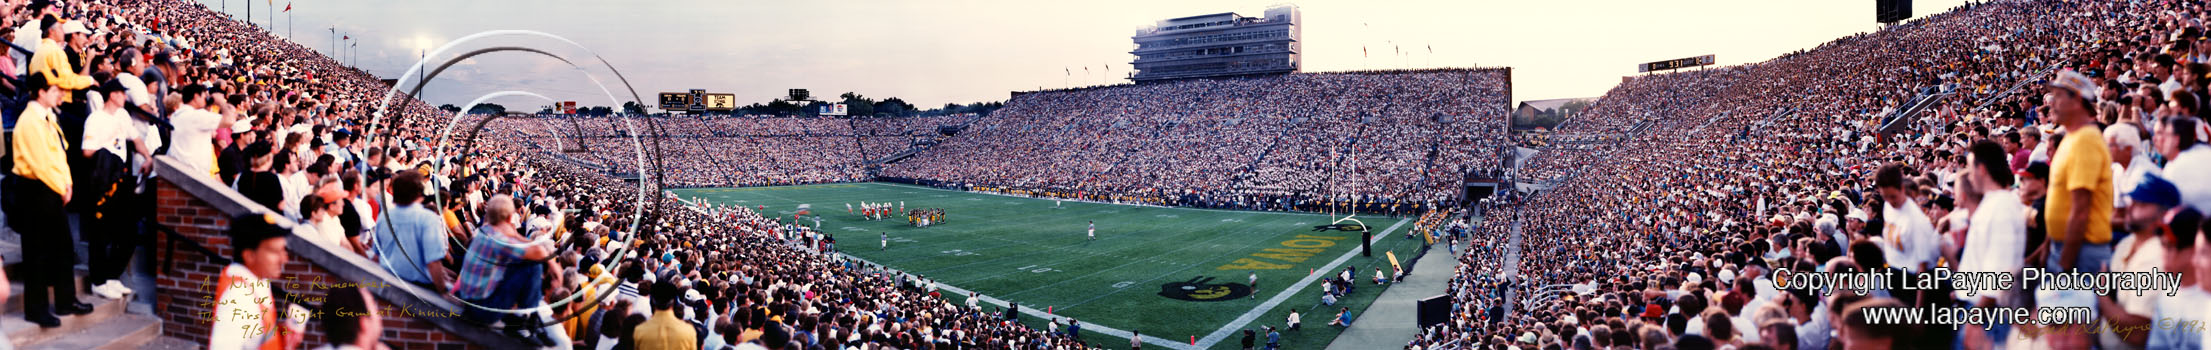 Kinnick Stadium 1992 - First night game panorama